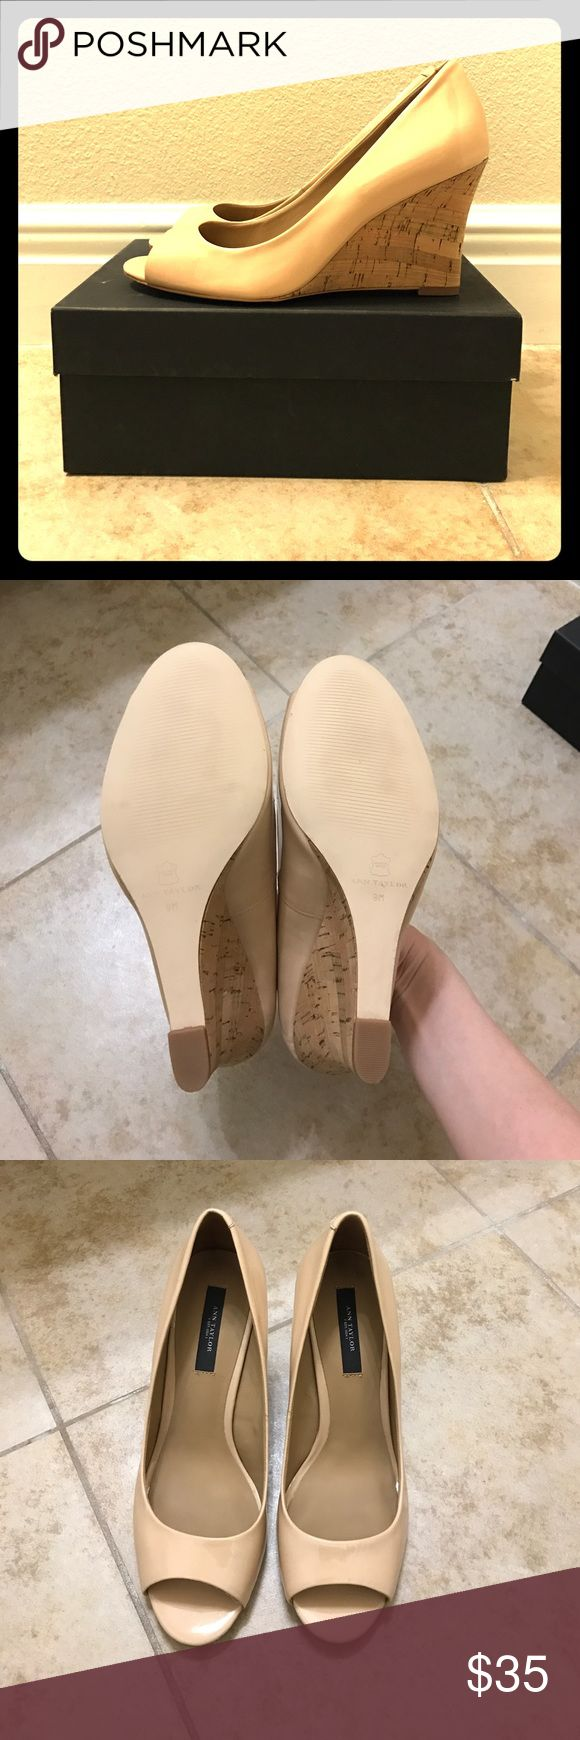 Ann Taylor patent beige and corkscrew wedges, 9.5 Stylish Ann Taylor peep toe patent beige wedges with corkscrew wedge. Size 9.5. Heel height is approx 3.5 inches. No trades, and reasonable offers only. Thanks! Ann Taylor Shoes Wedges